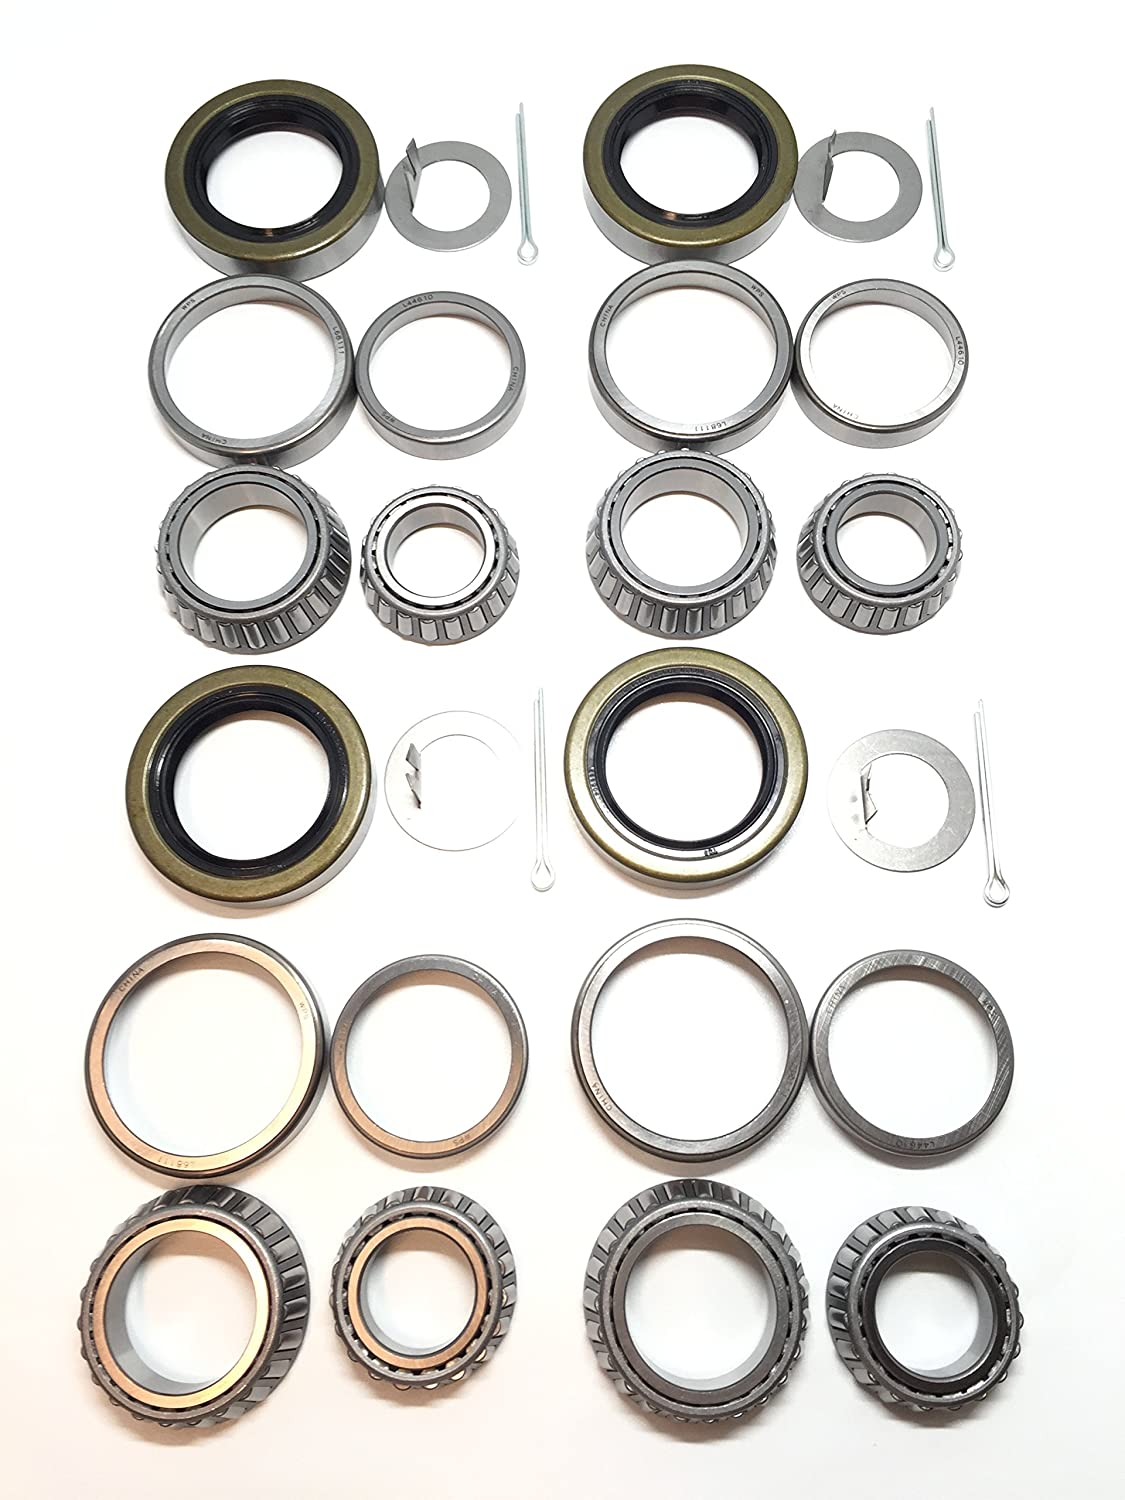 (Set of 4) WPS 3500# Trailer Tandem Axle Bearing Kits L68149 L44649 Grease Seal 10-19 I.D. 1.719'' for #84 Spindle 81ABHwfDBHL